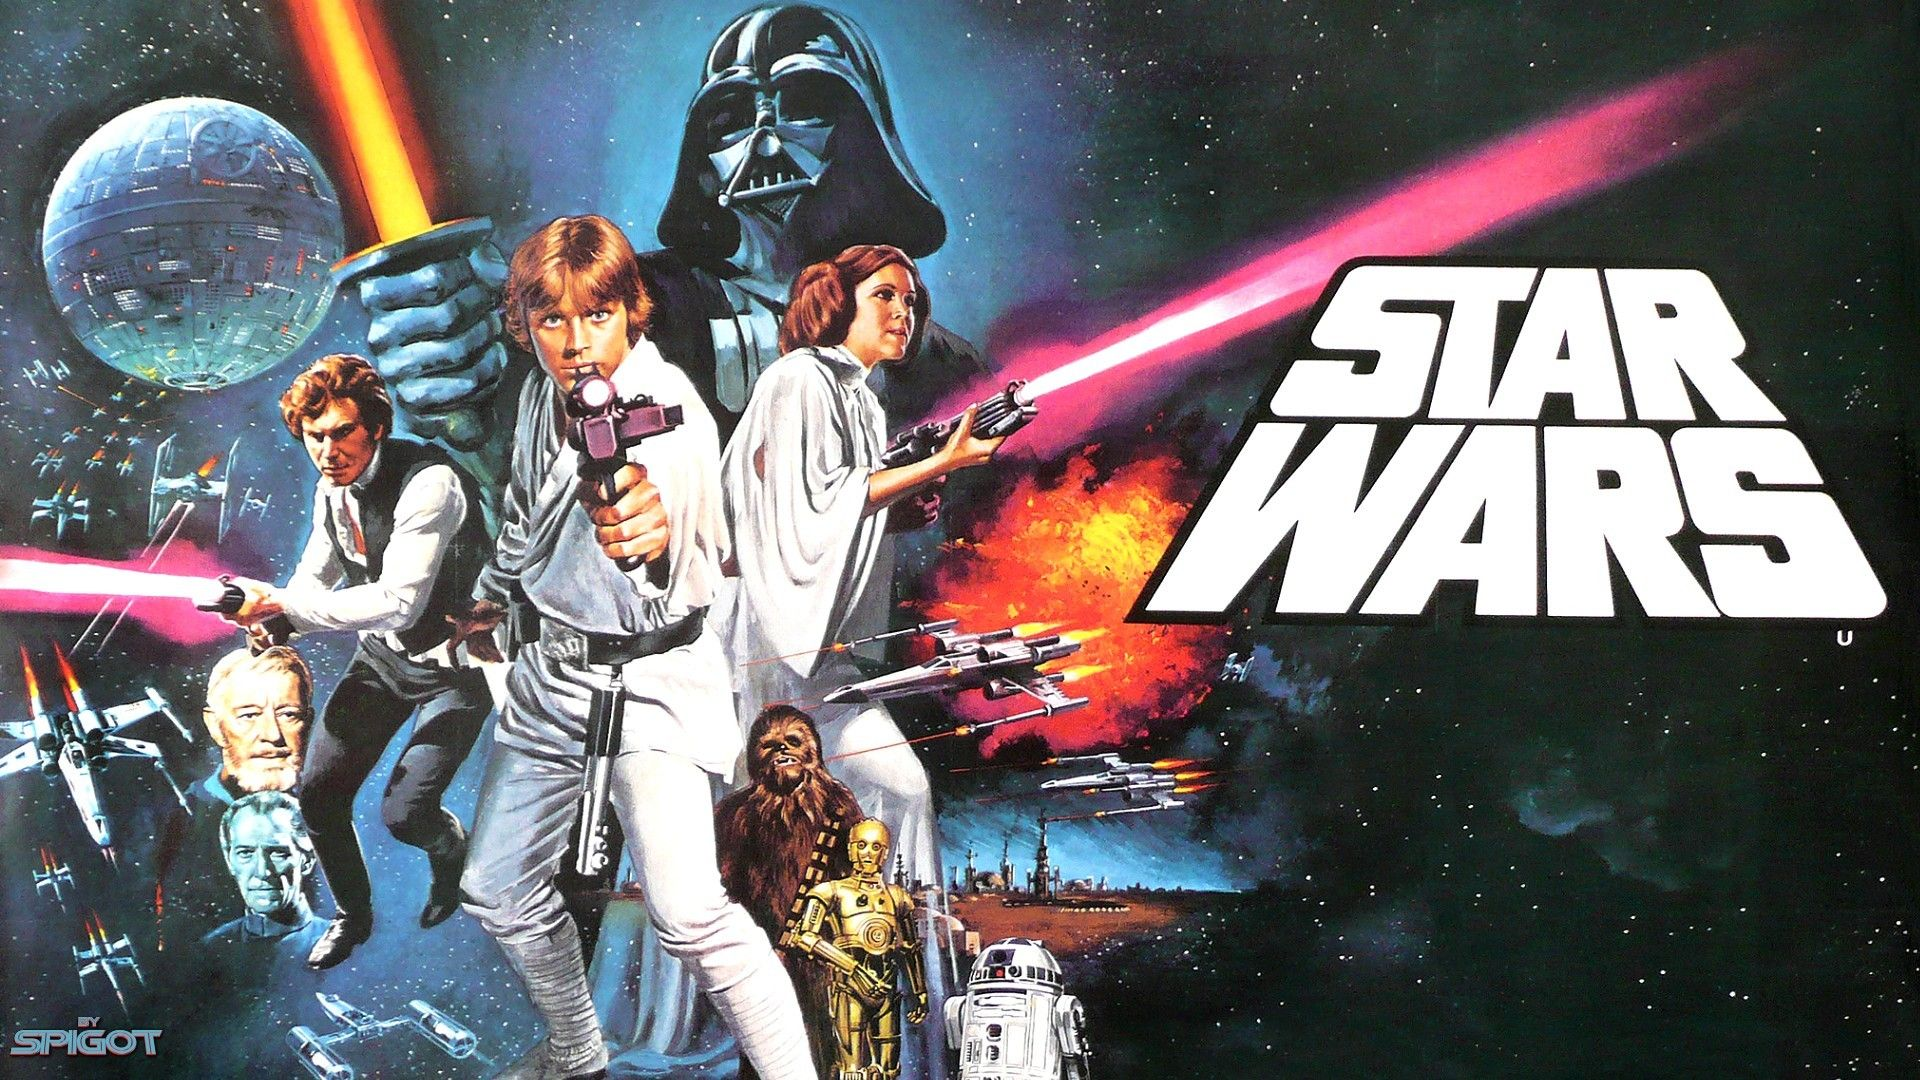 Star Wars Poster Wallpapers Wallpaper Cave